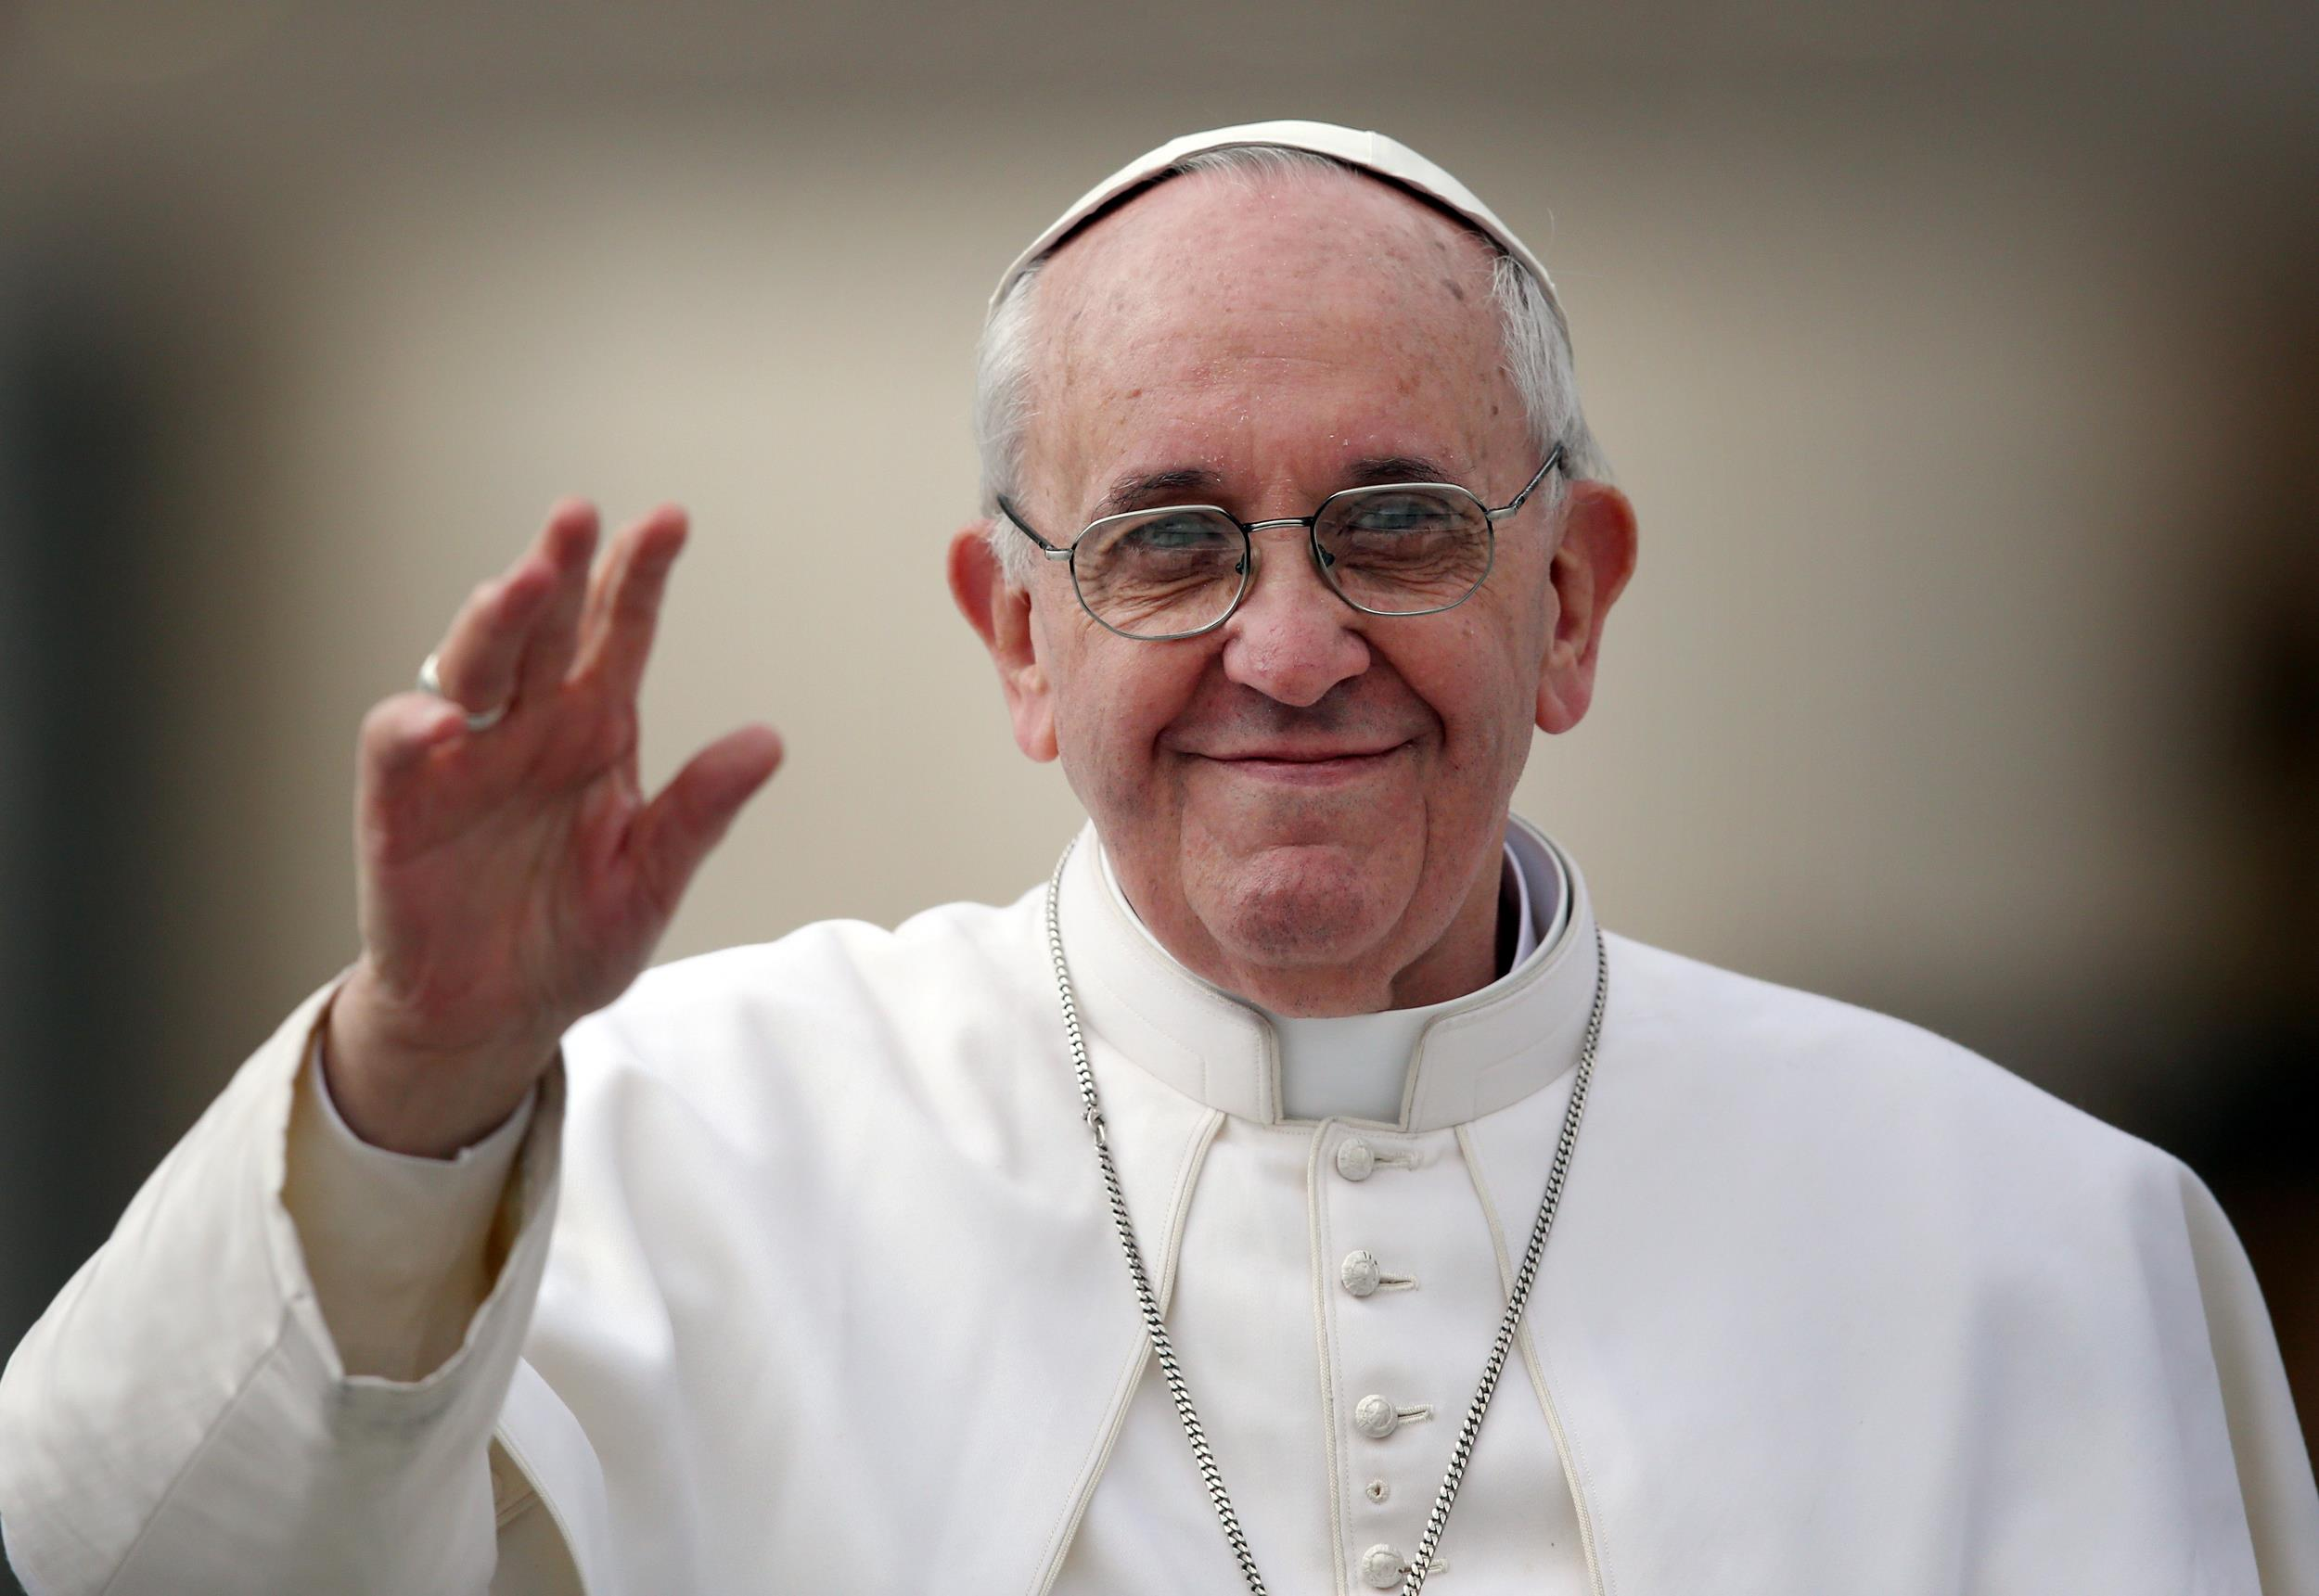 Pope Francis recently made comments about evolution and creation that advocate heresy.